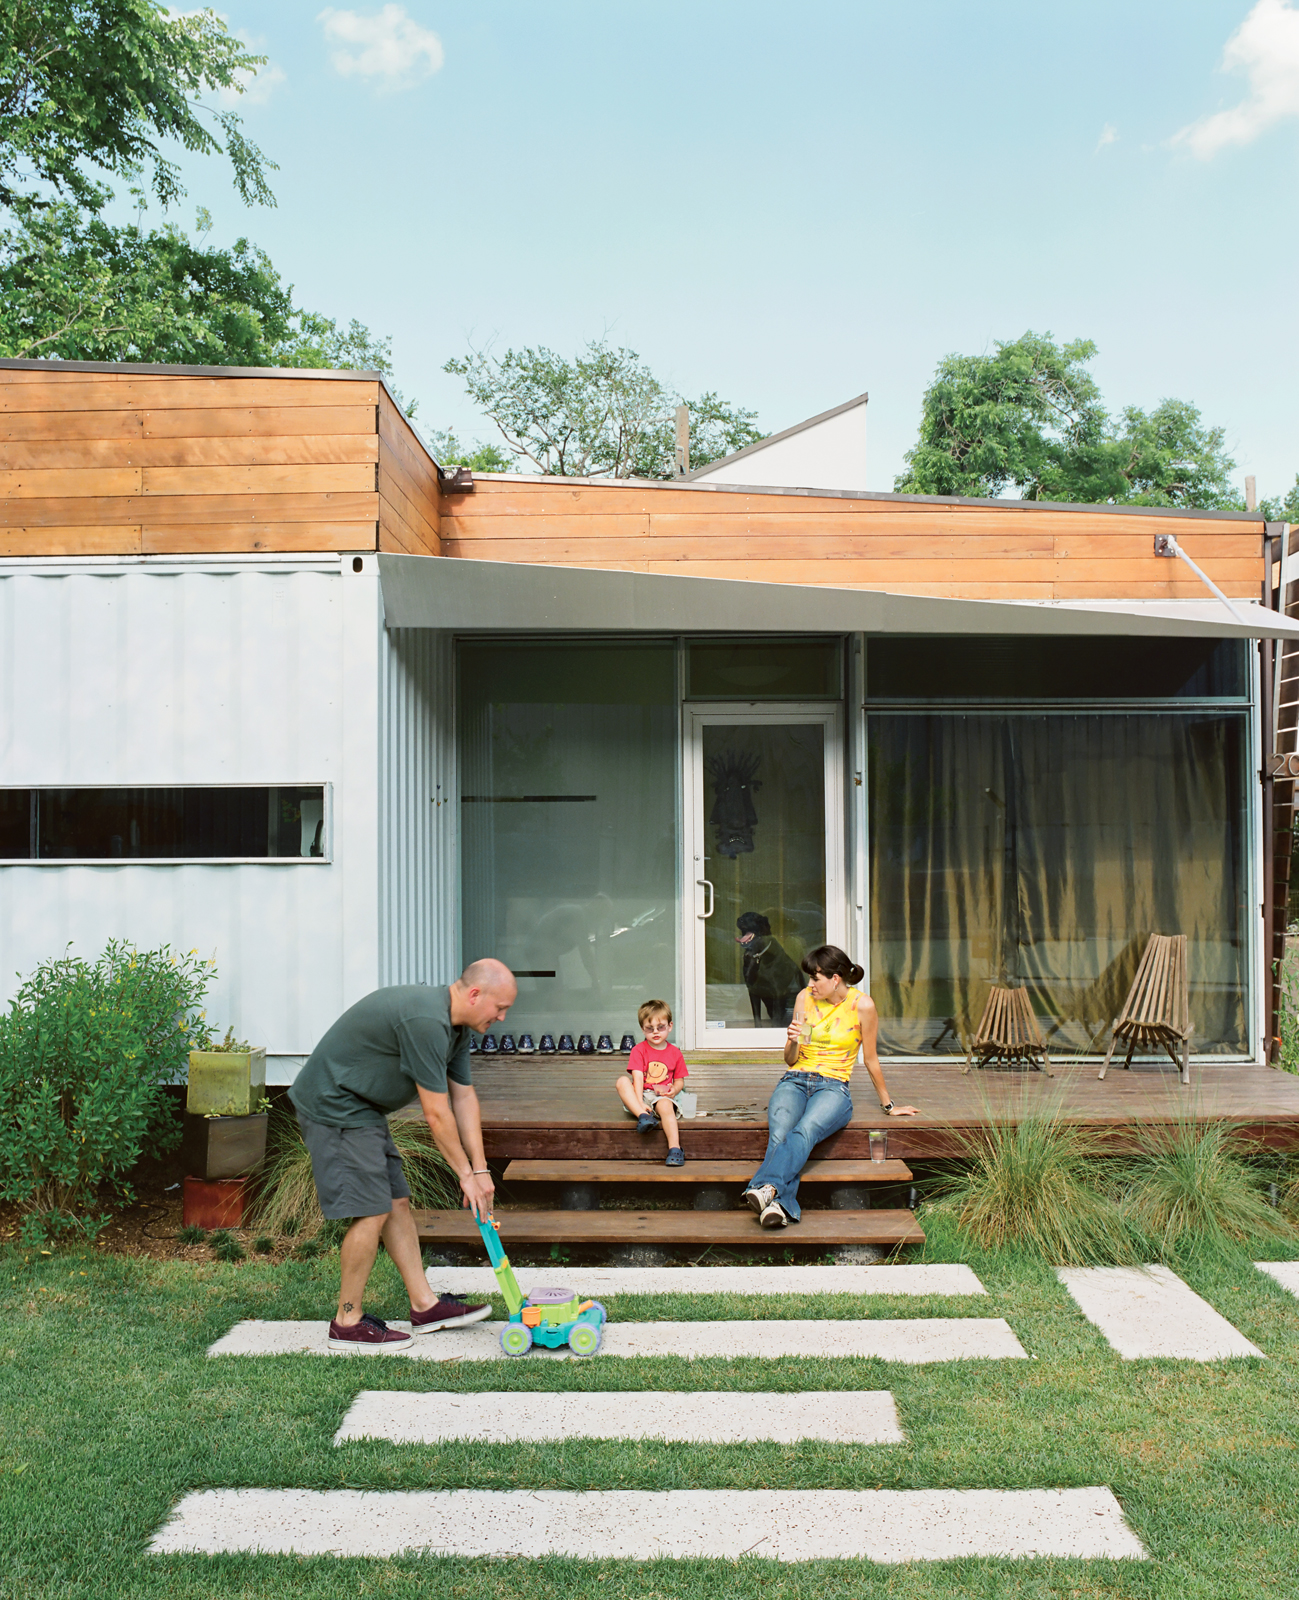 Family Home In A Shipping Container. Can You Make It Work?